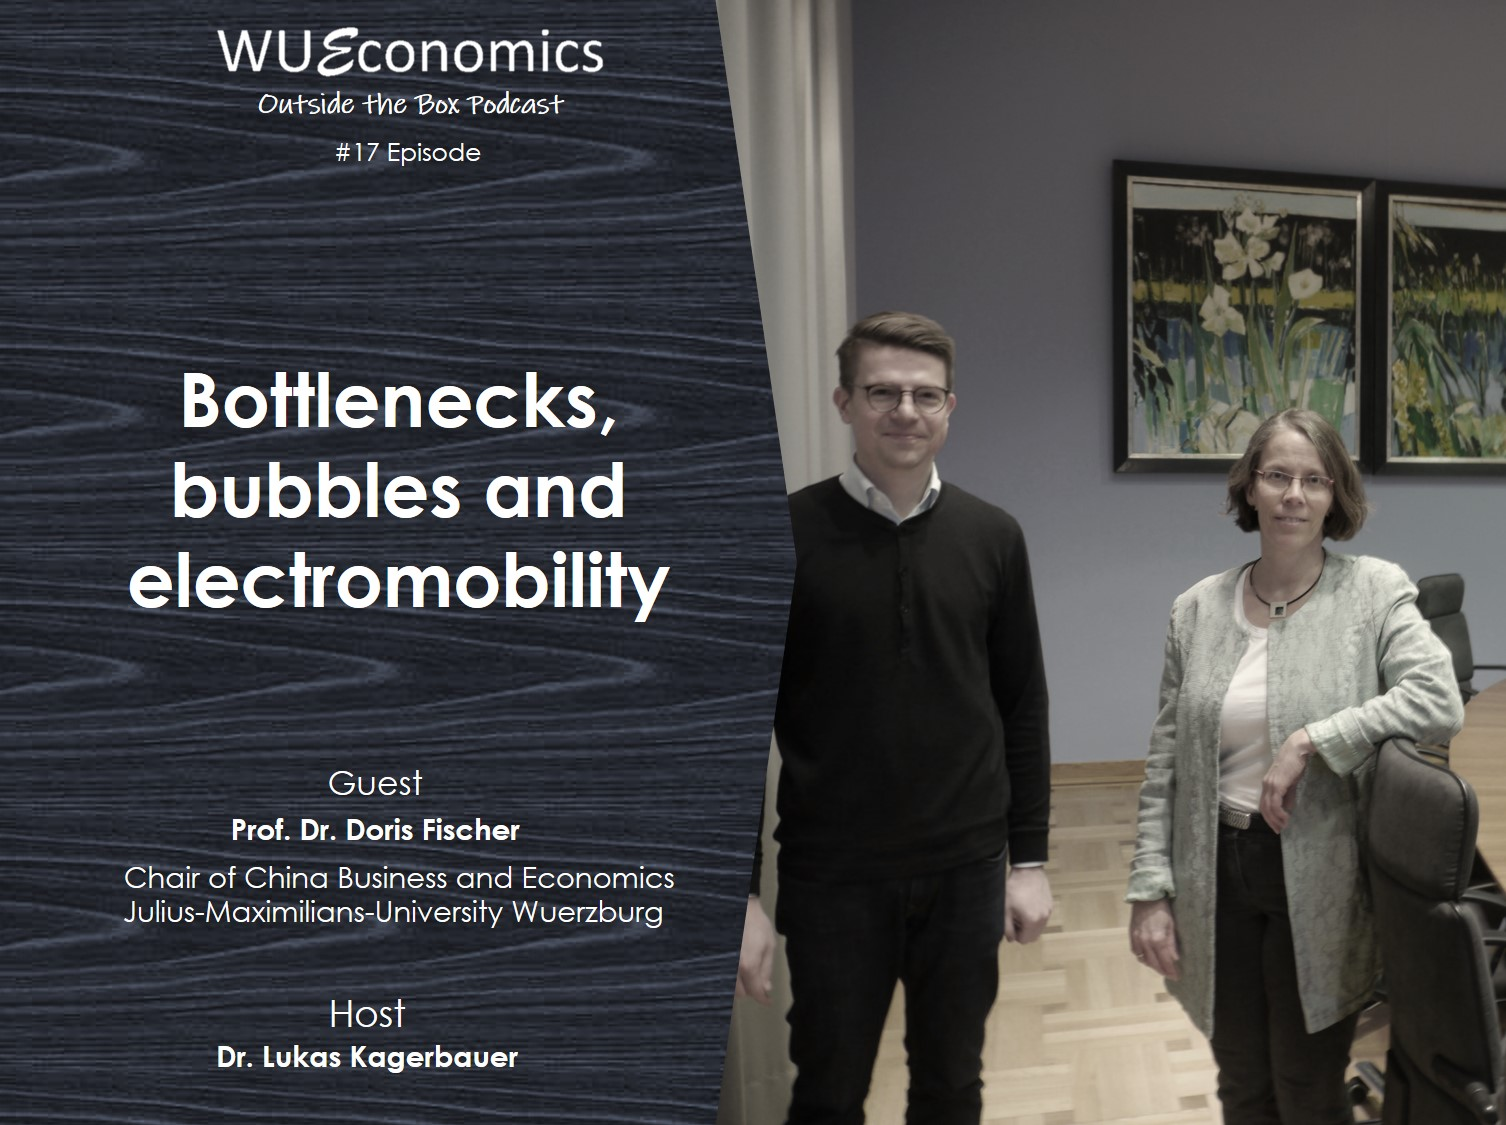 Bottlenecks, bubbles and electromobility (Episode 17)